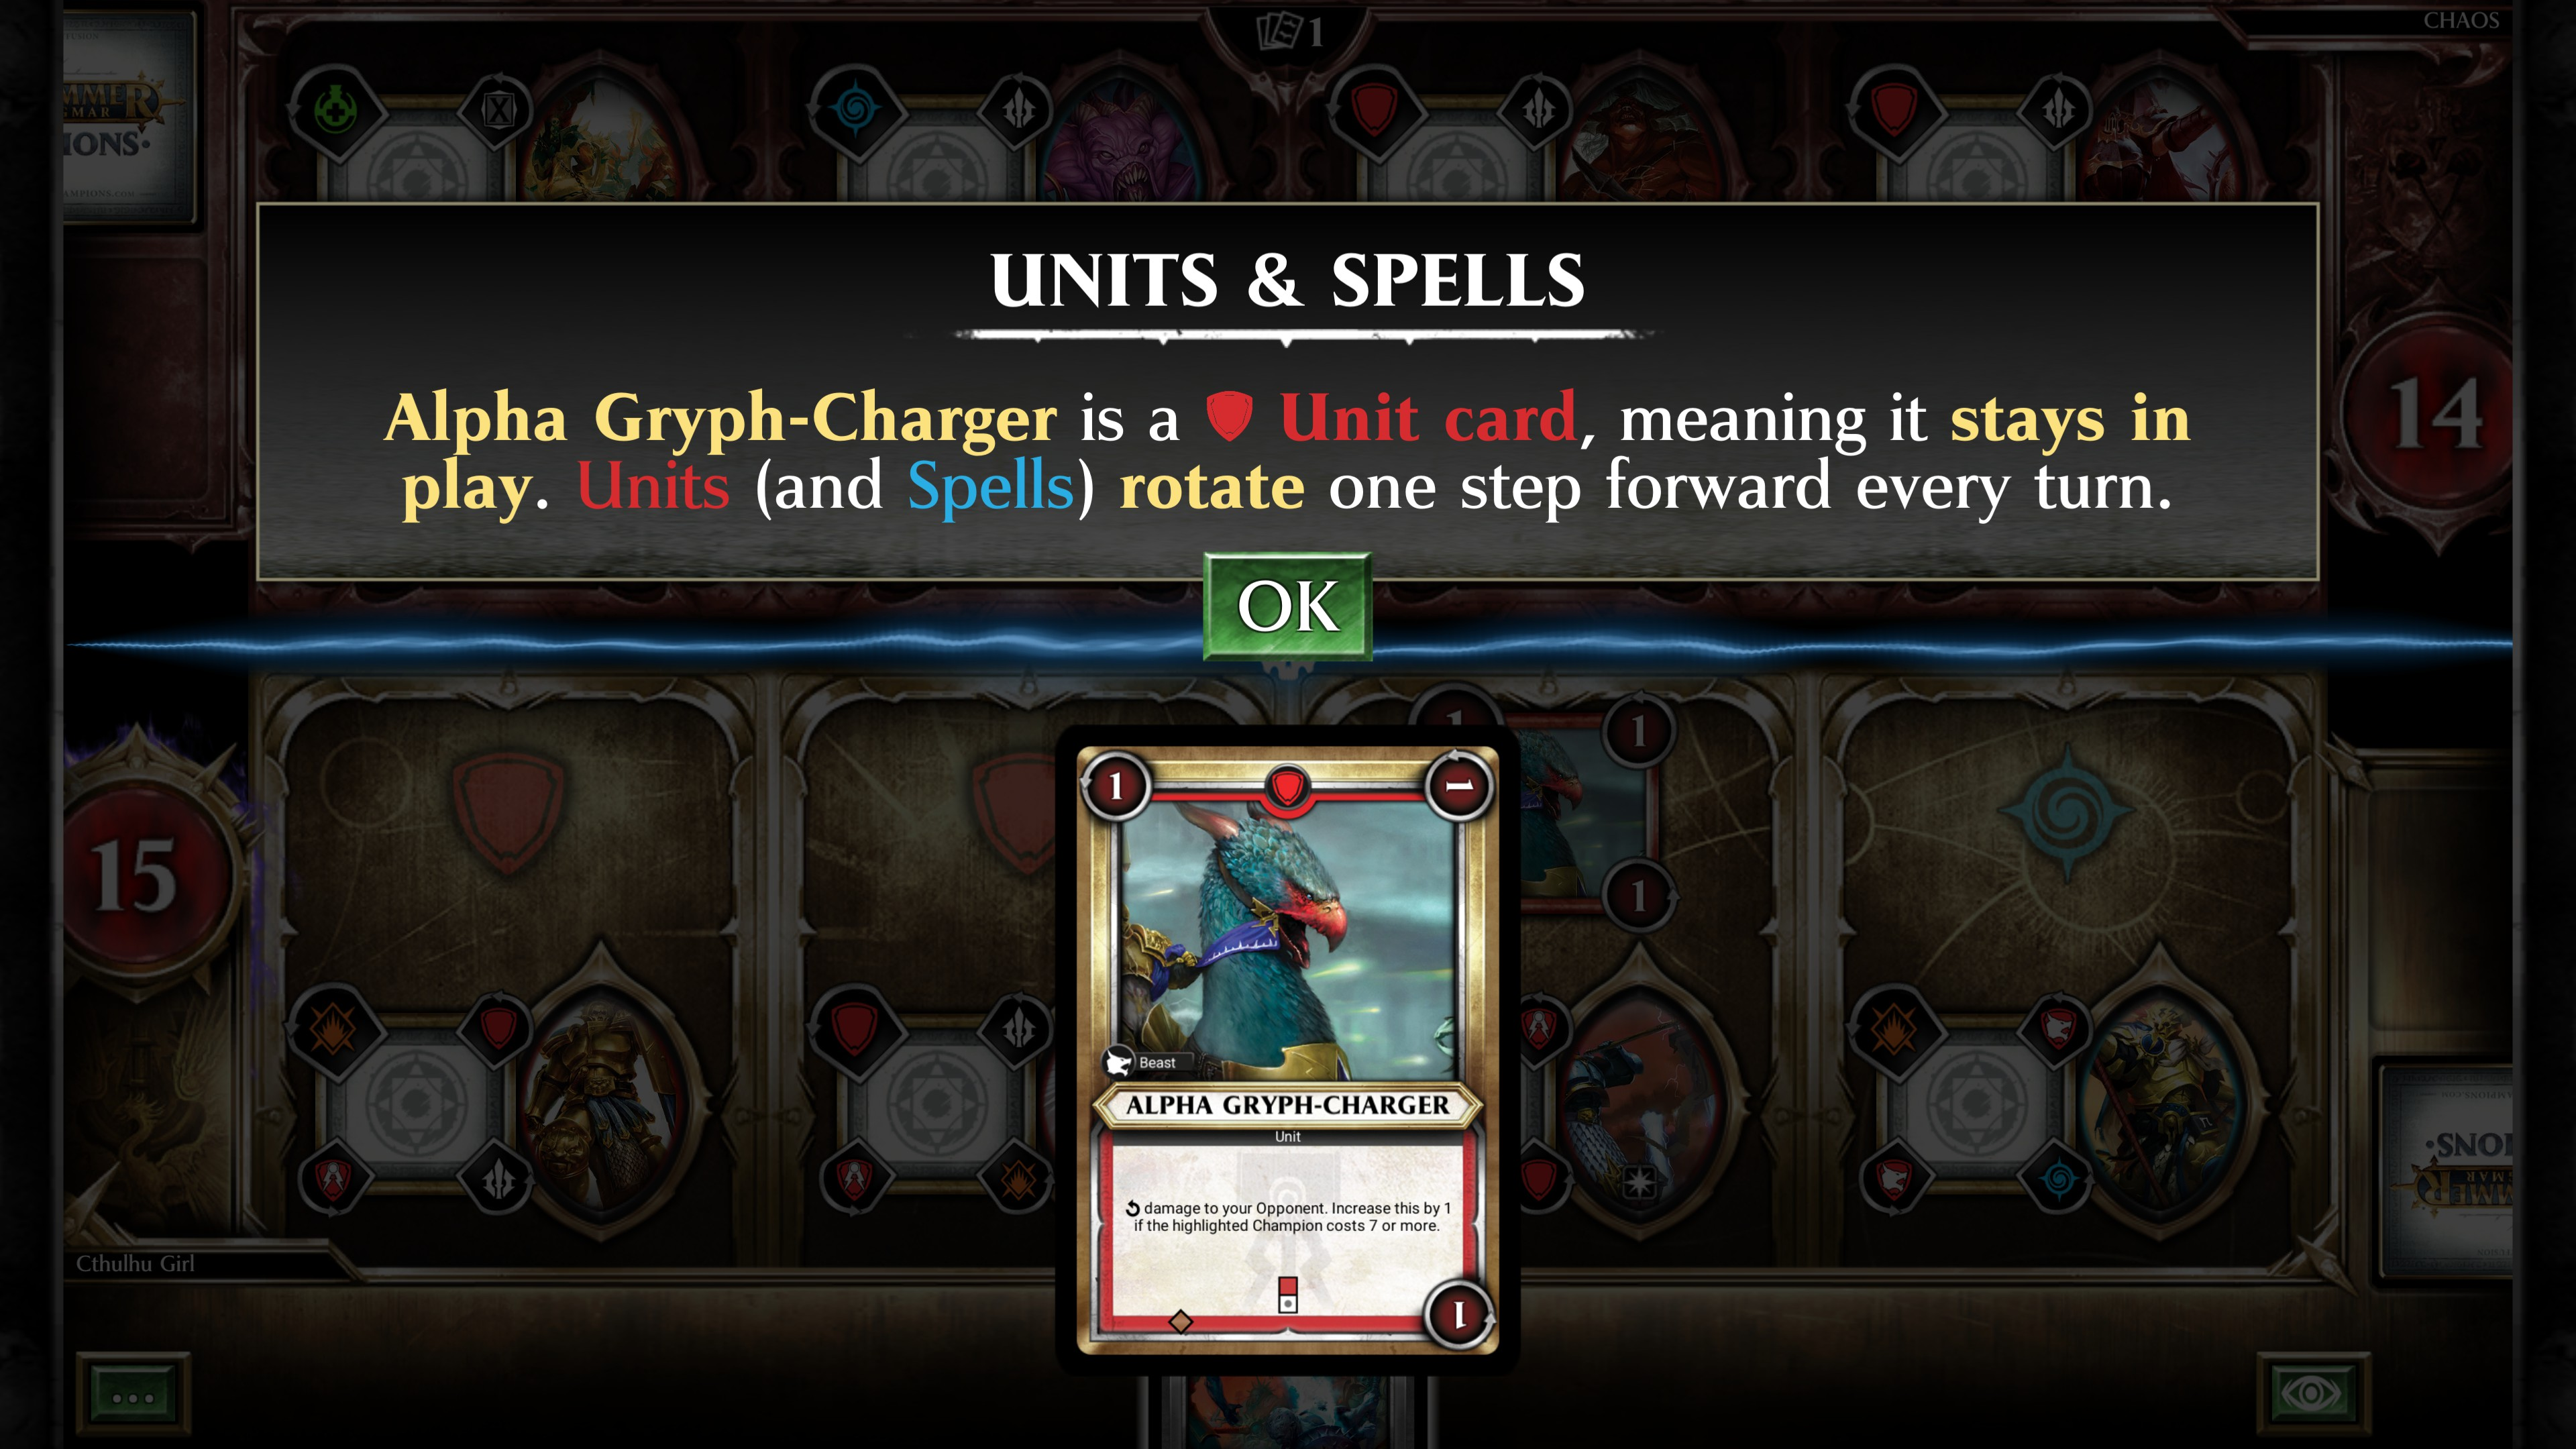 units and spells description: Alpha Grph-Charger is a unit card, meaning it stays in play. Units (and spells) rotate one step forward every turn